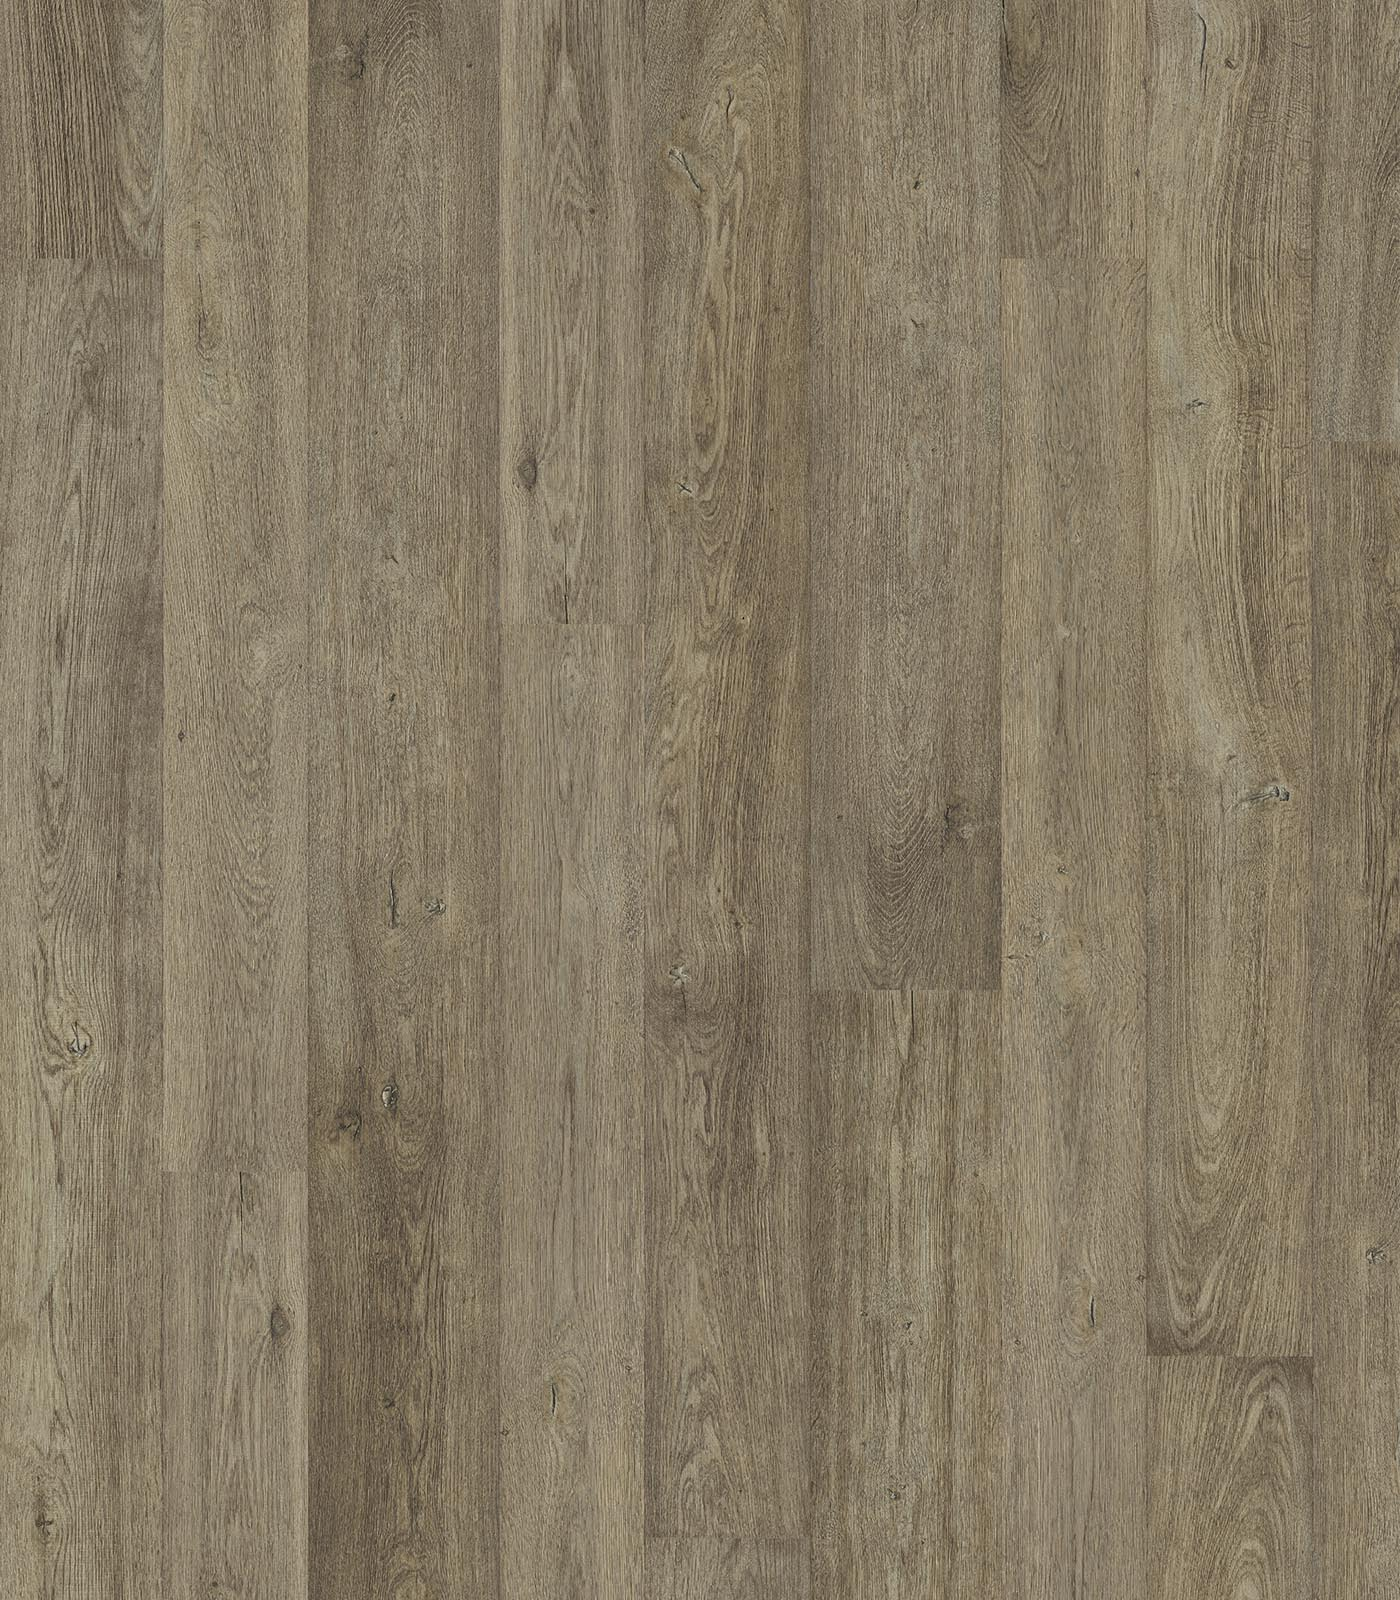 Tarragona-Heritage Collection-European Oak Floors-flat